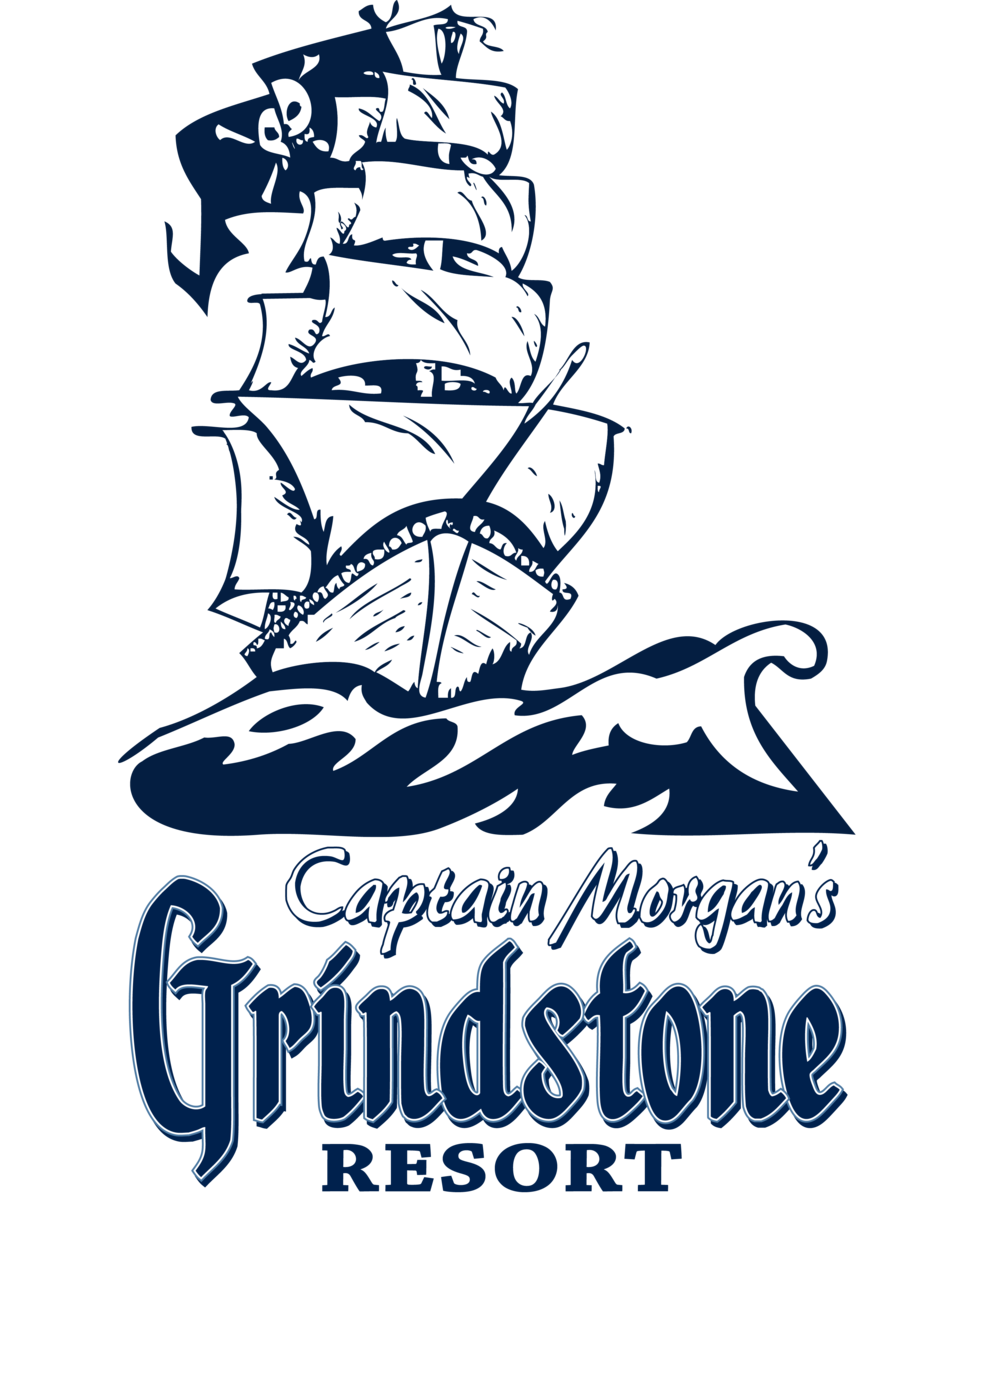 Captain Morgan's Grindstone Resort